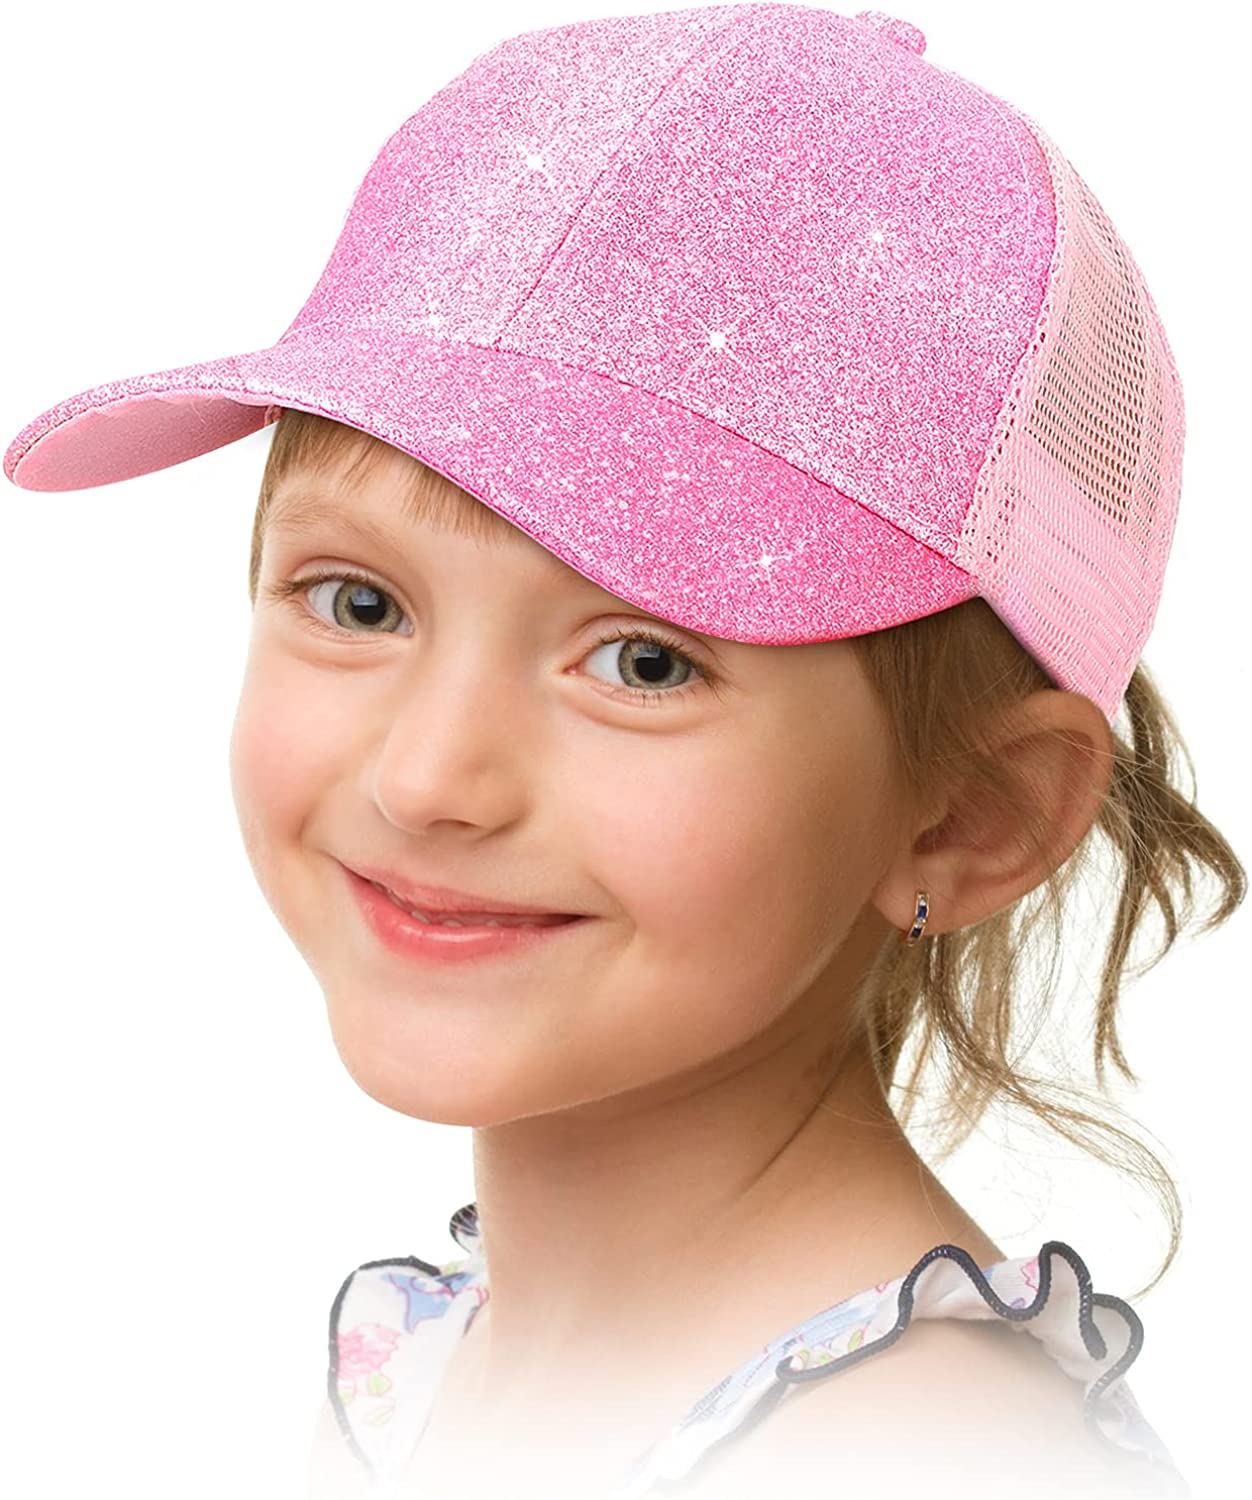 Geyoga Girls Ponytail Hat Glitter Baseball Cap with High Bun Messy Ponytail Hole (Pink, 1): Clothing, Shoes & Jewelry